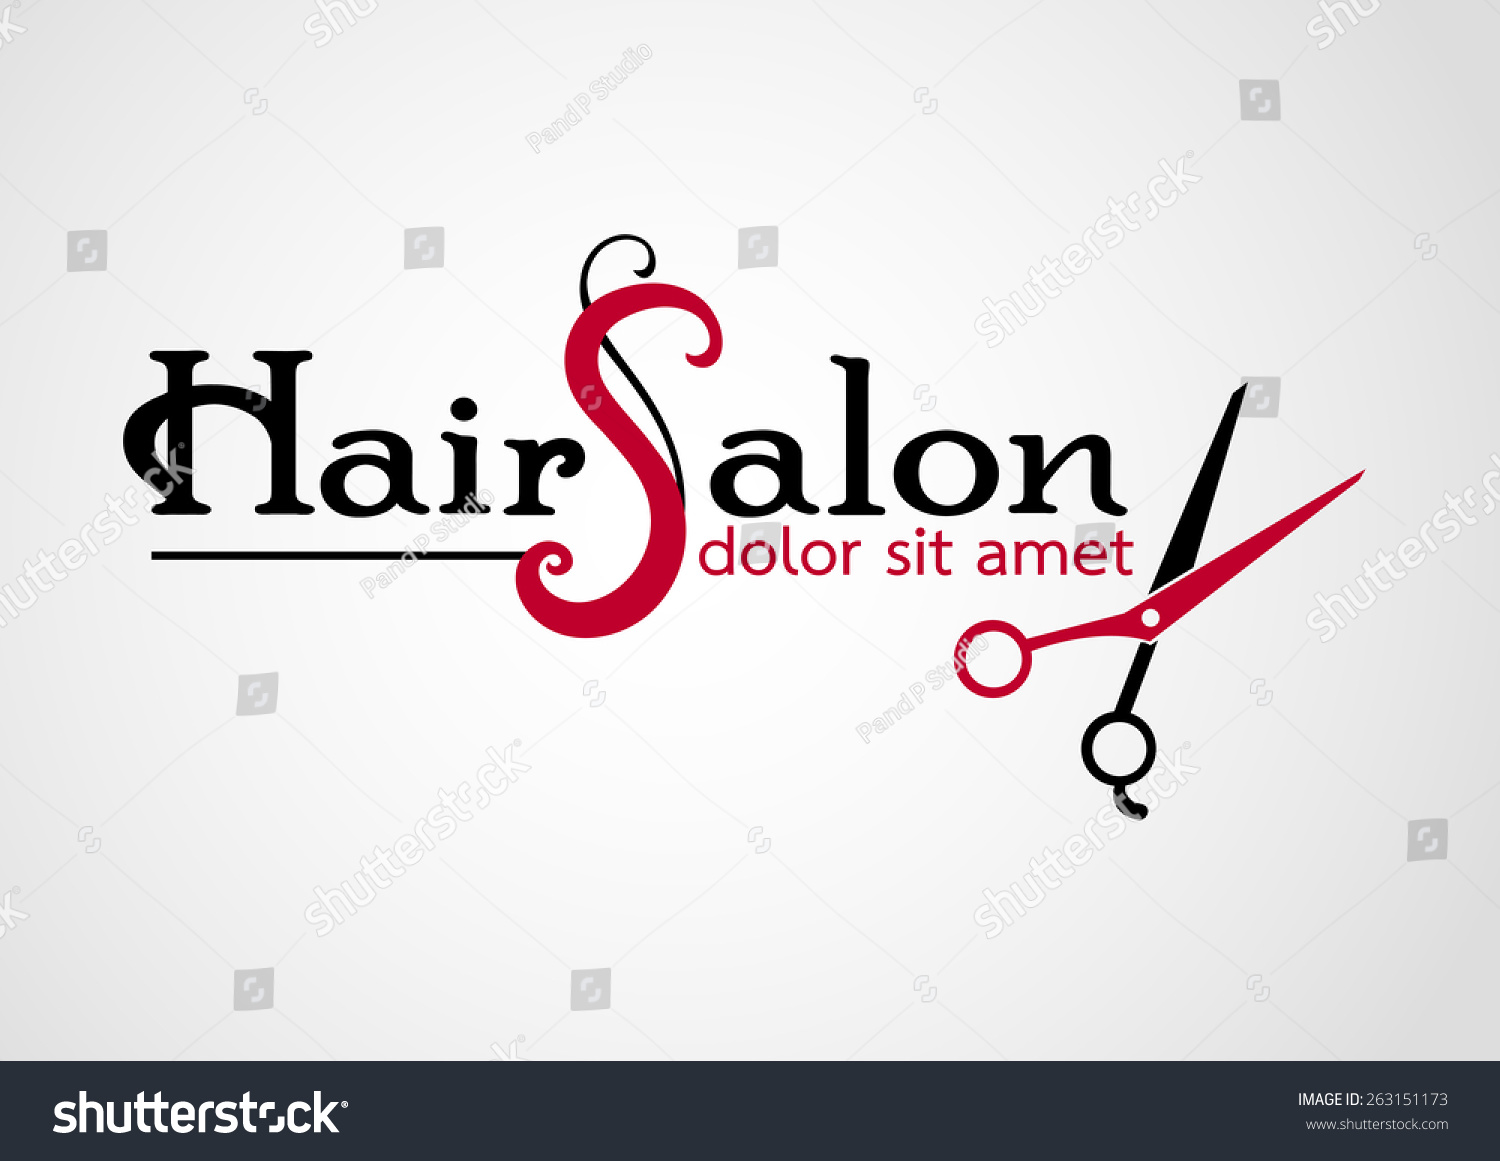 26 best Salon Advertising images on Pinterest  Salon